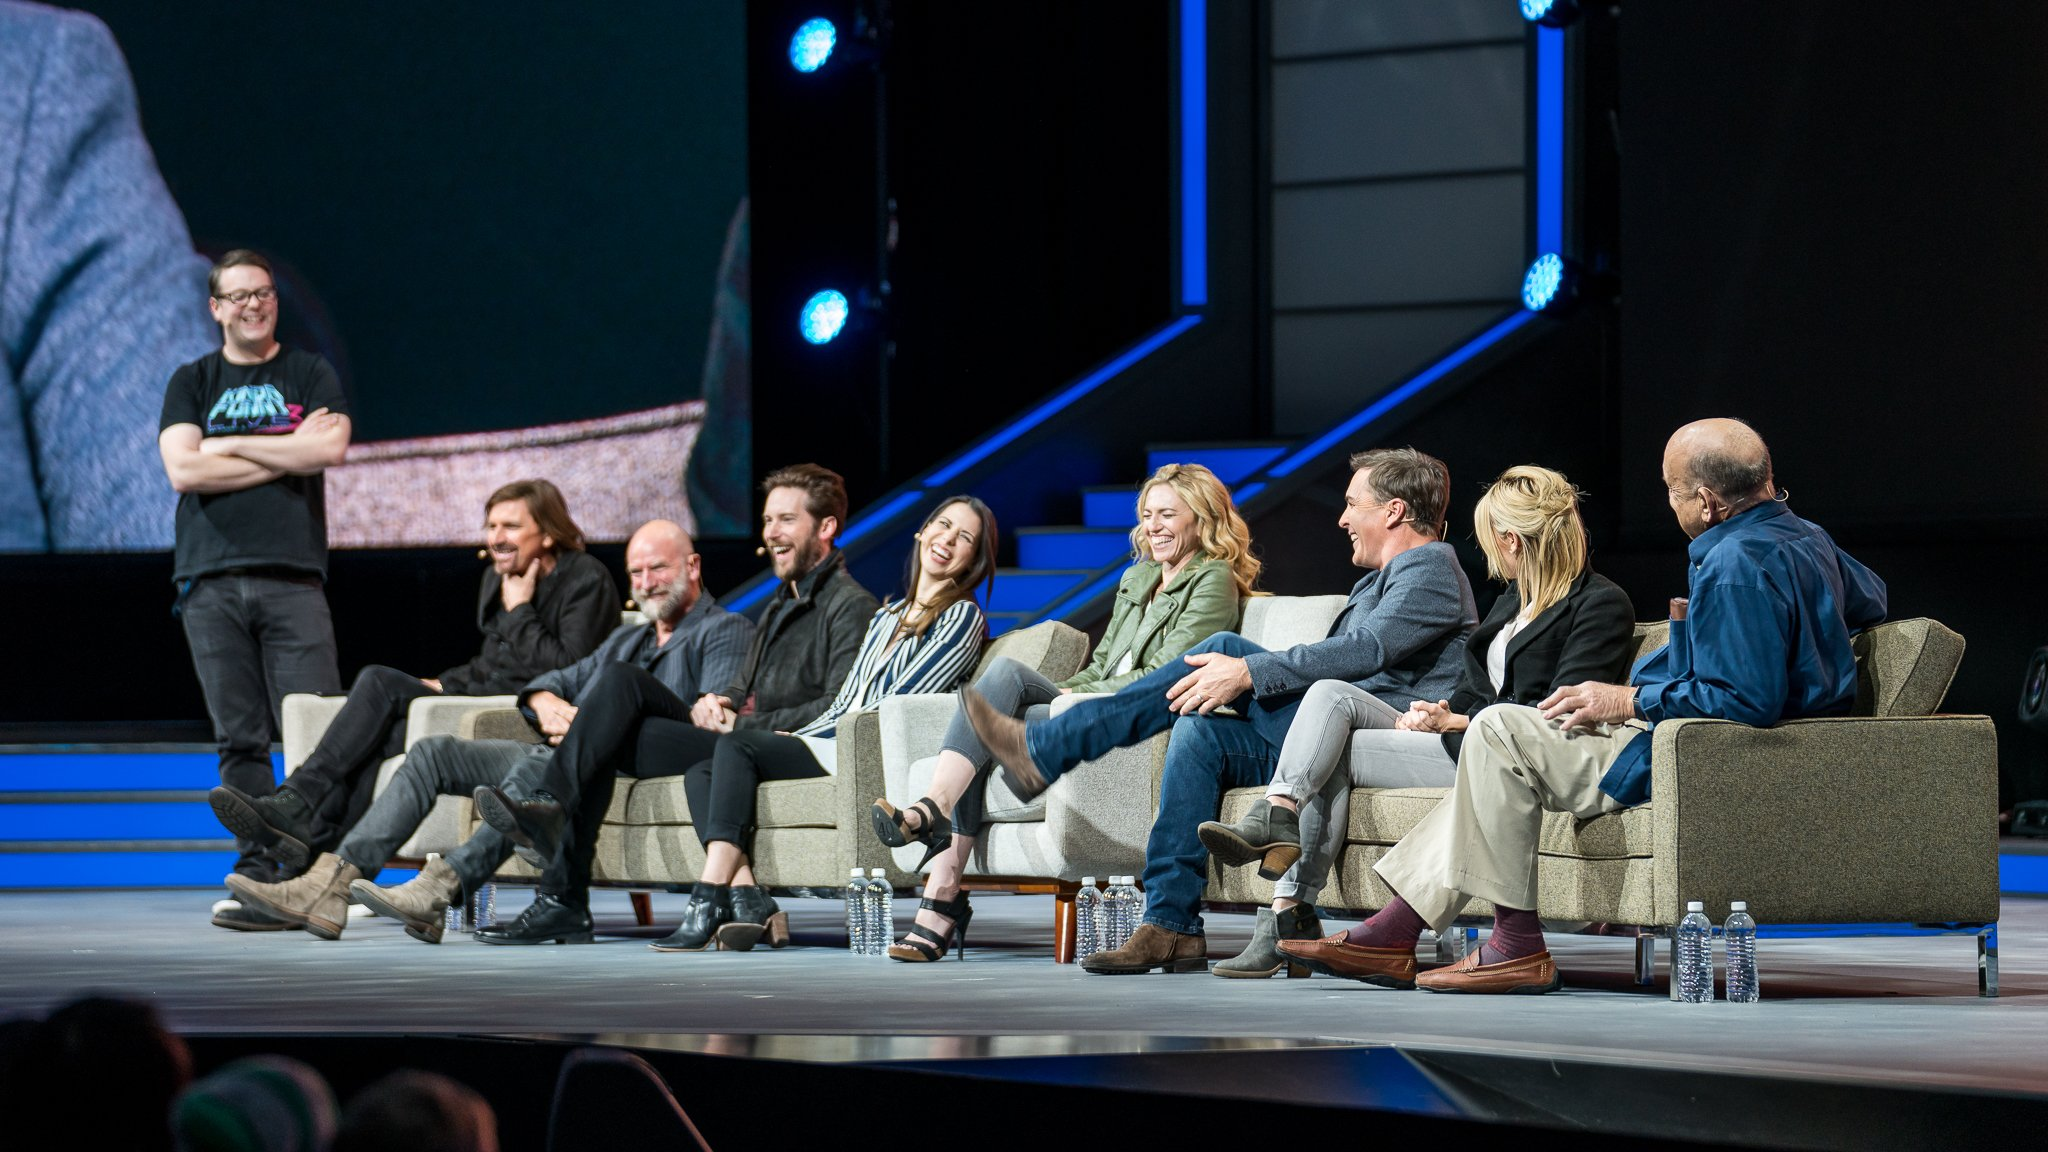 Good times at the #Uncharted10 panel <3 @Naughty_Dog #PSX https://t.co/LXO0IRbQFH